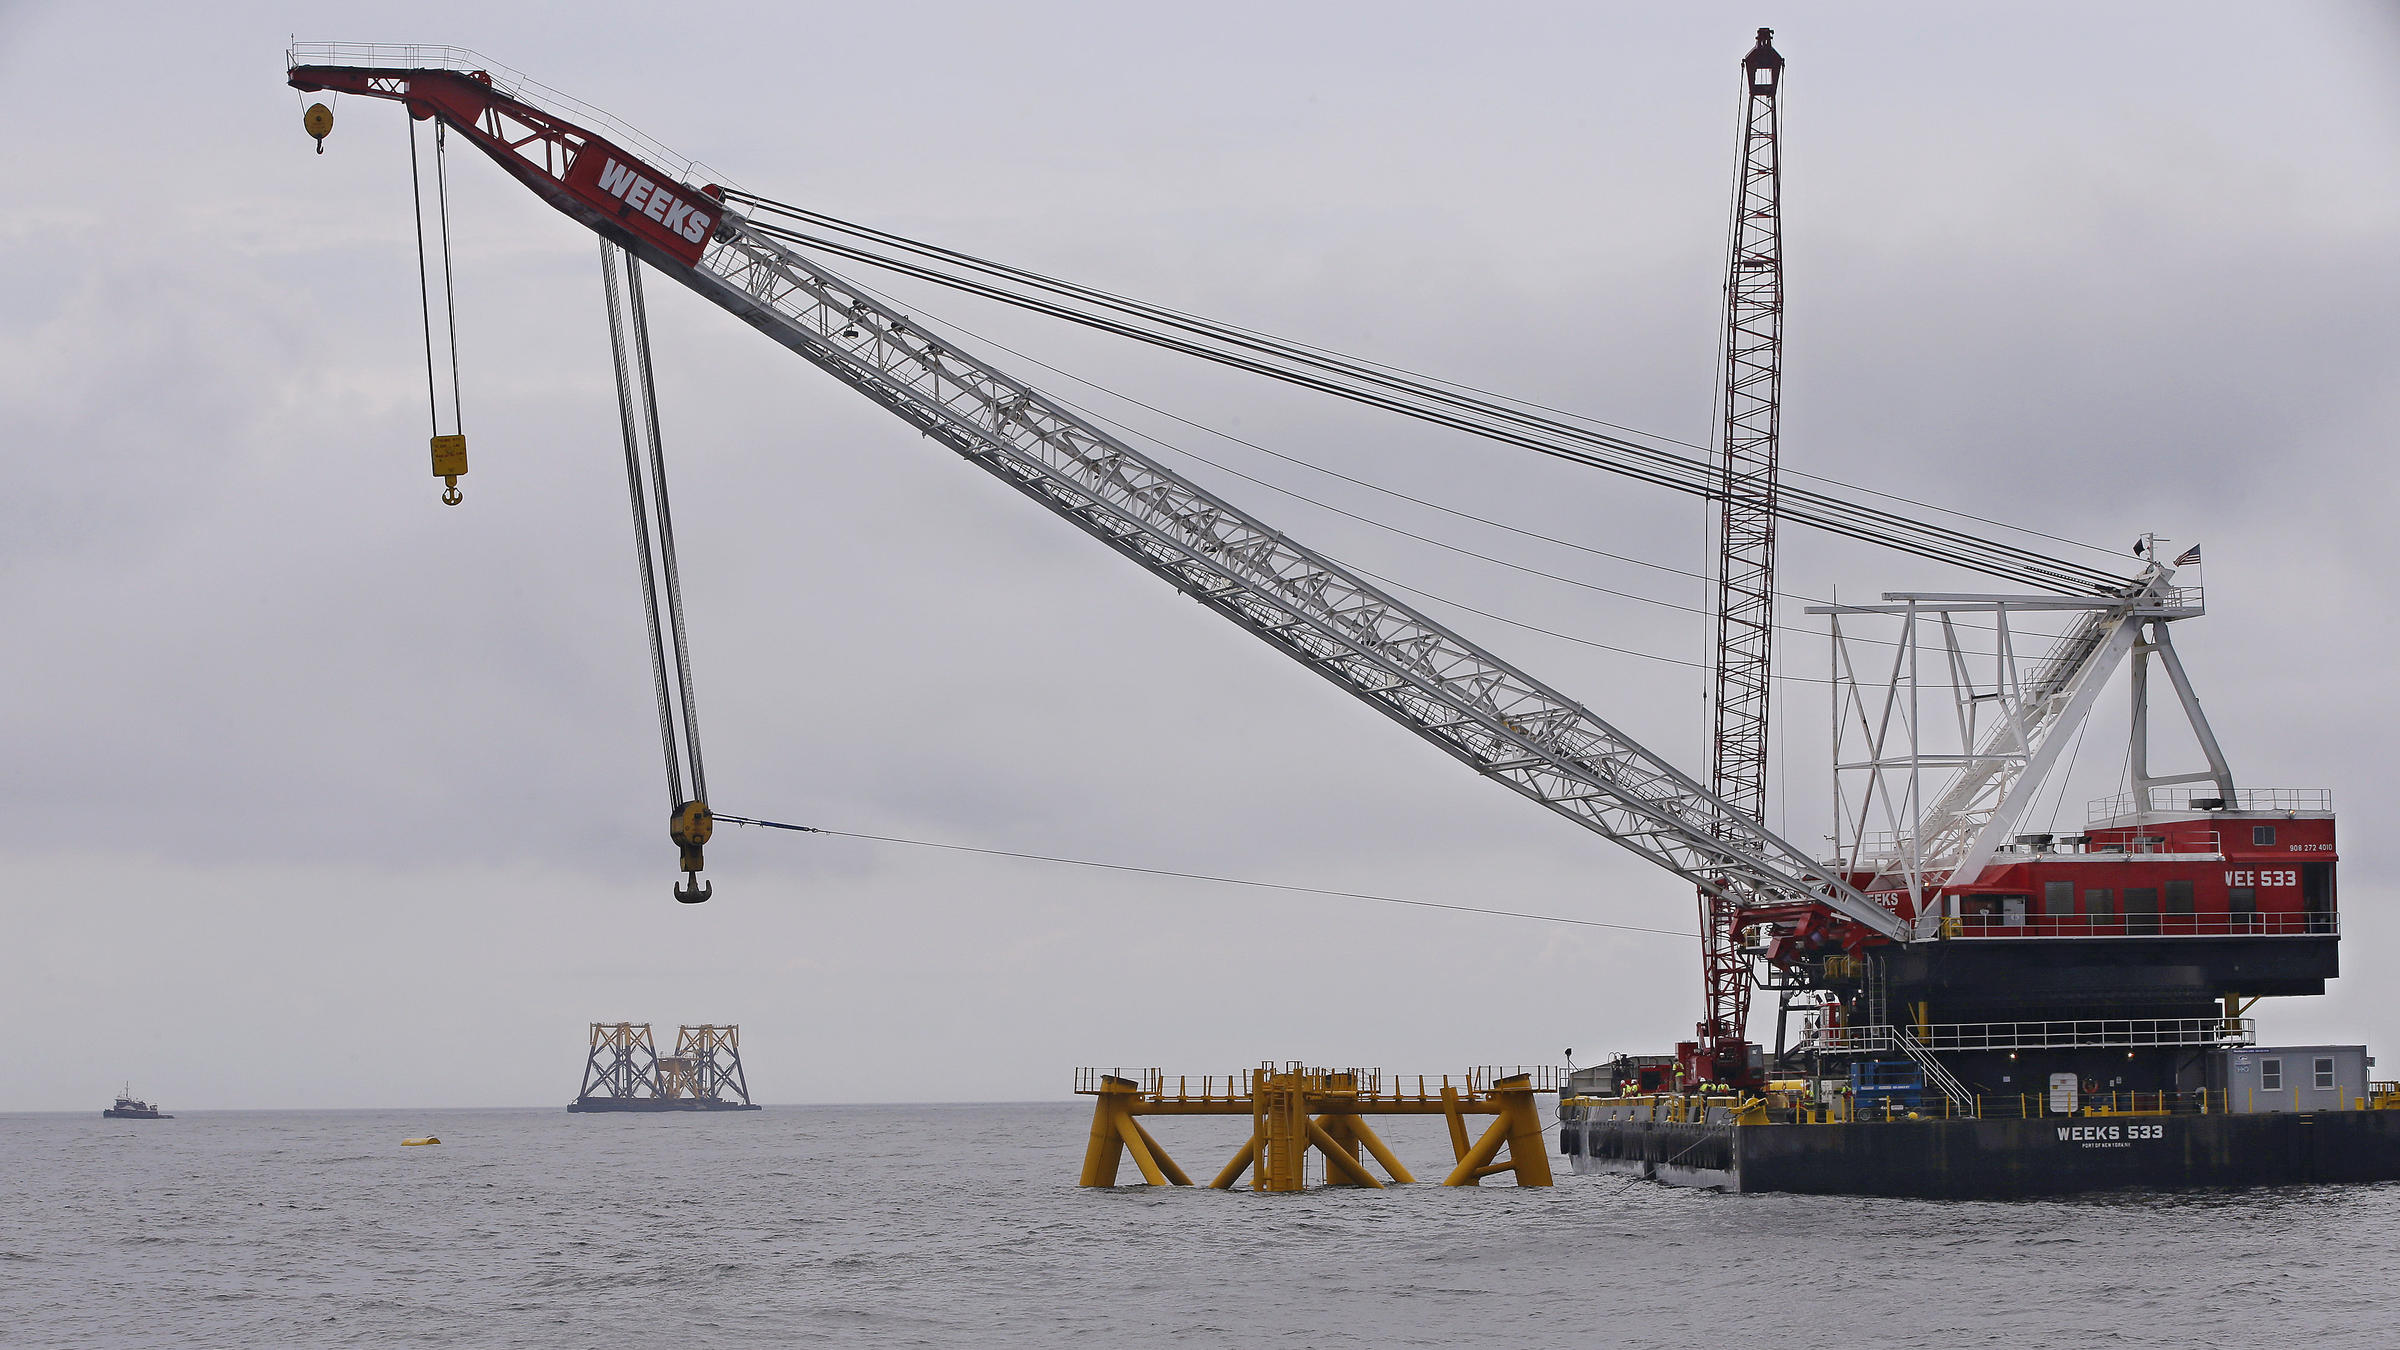 Winds Of Change Rhode Island Hopes For First Offshore Wind Farm